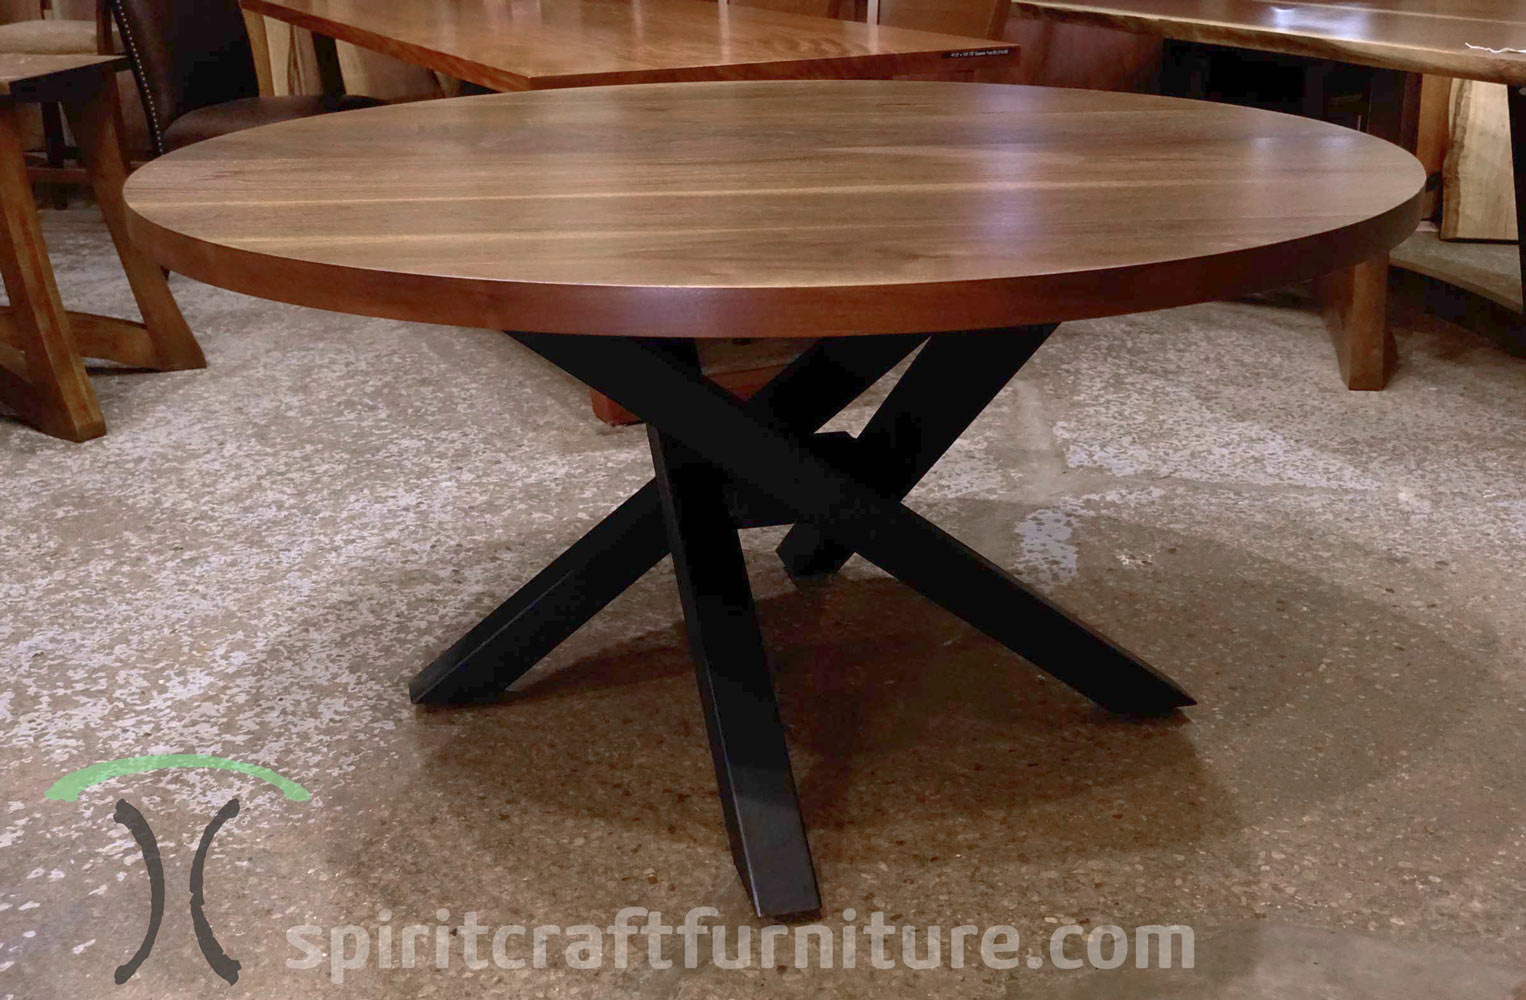 60 Inch Round Walnut dining table in Chicago area from Spiritcraft Furniture in East Dundee, IL.